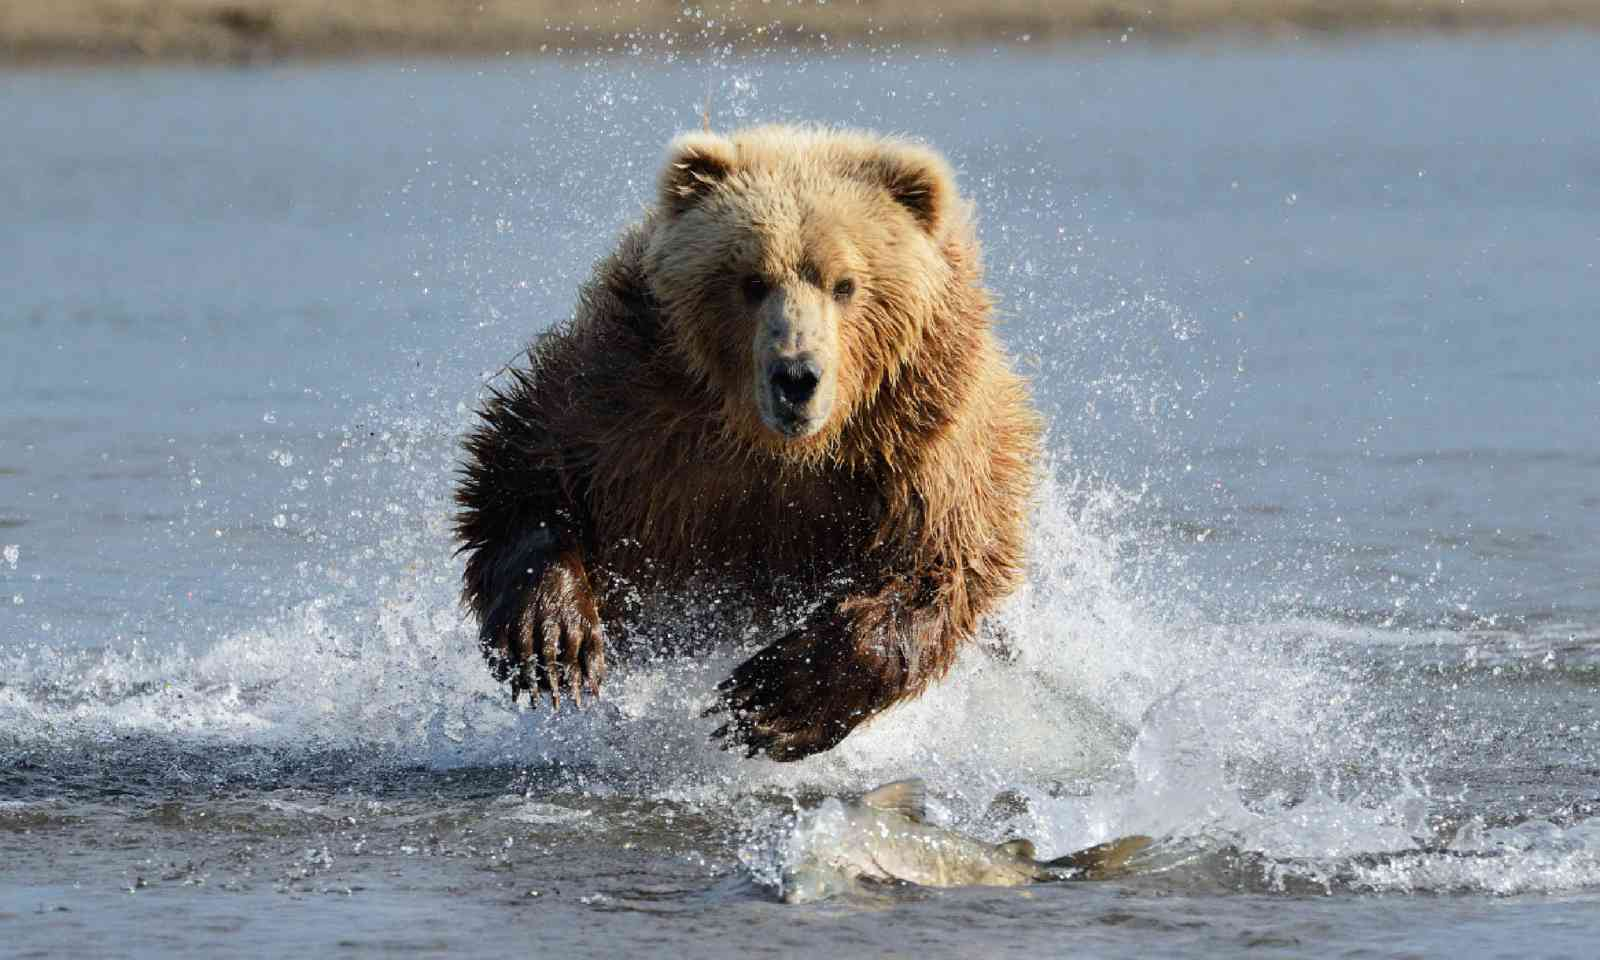 Grizzly bear jumping at fish (Shutterstock)